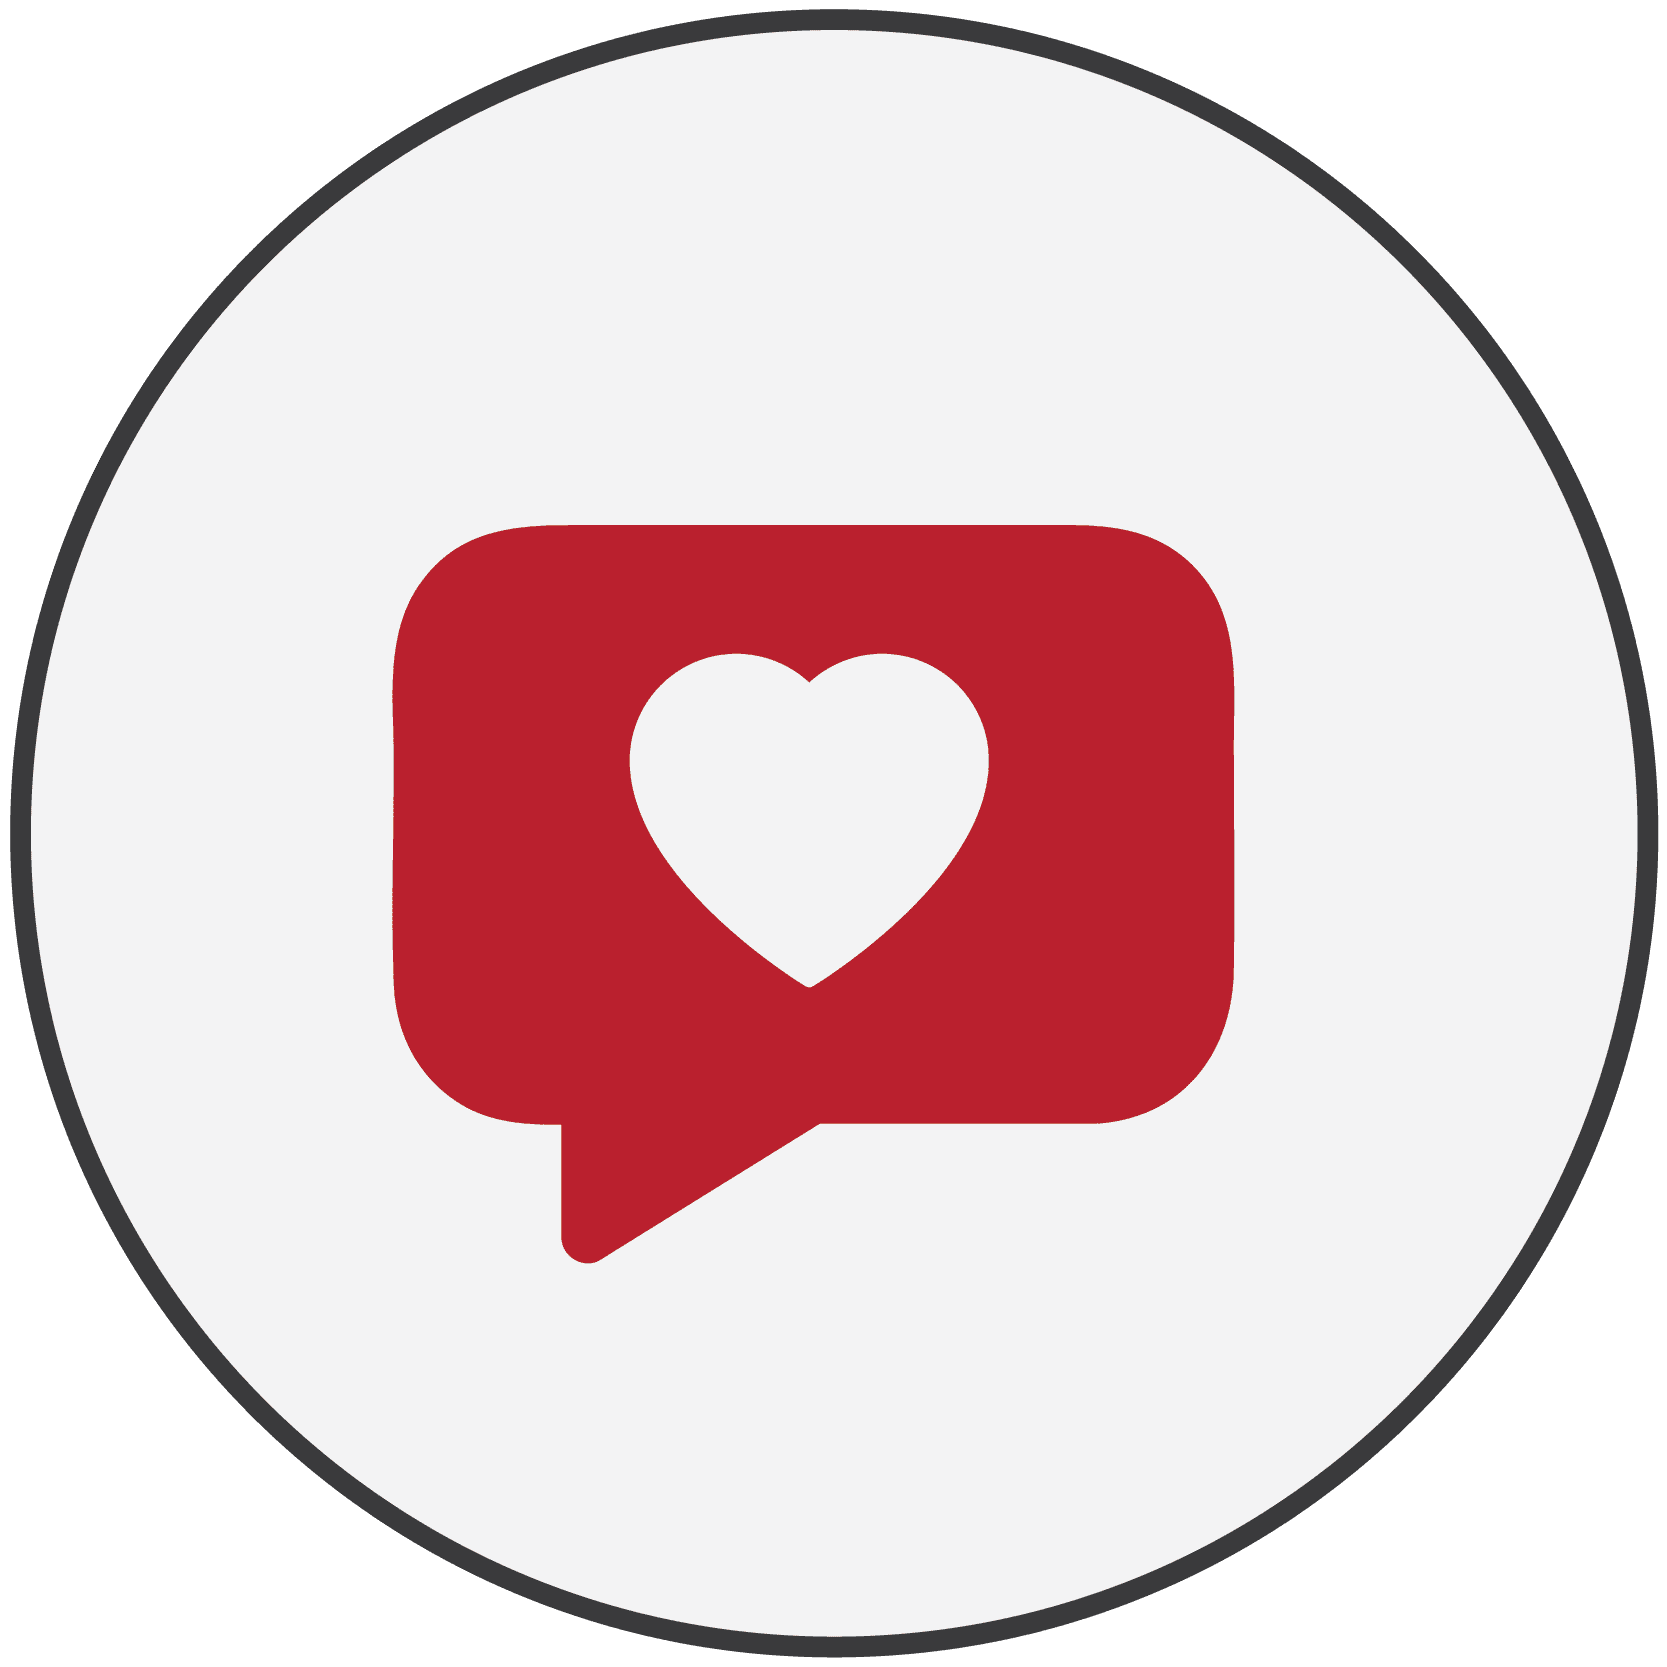 Red icon of a speech bubble with a heart